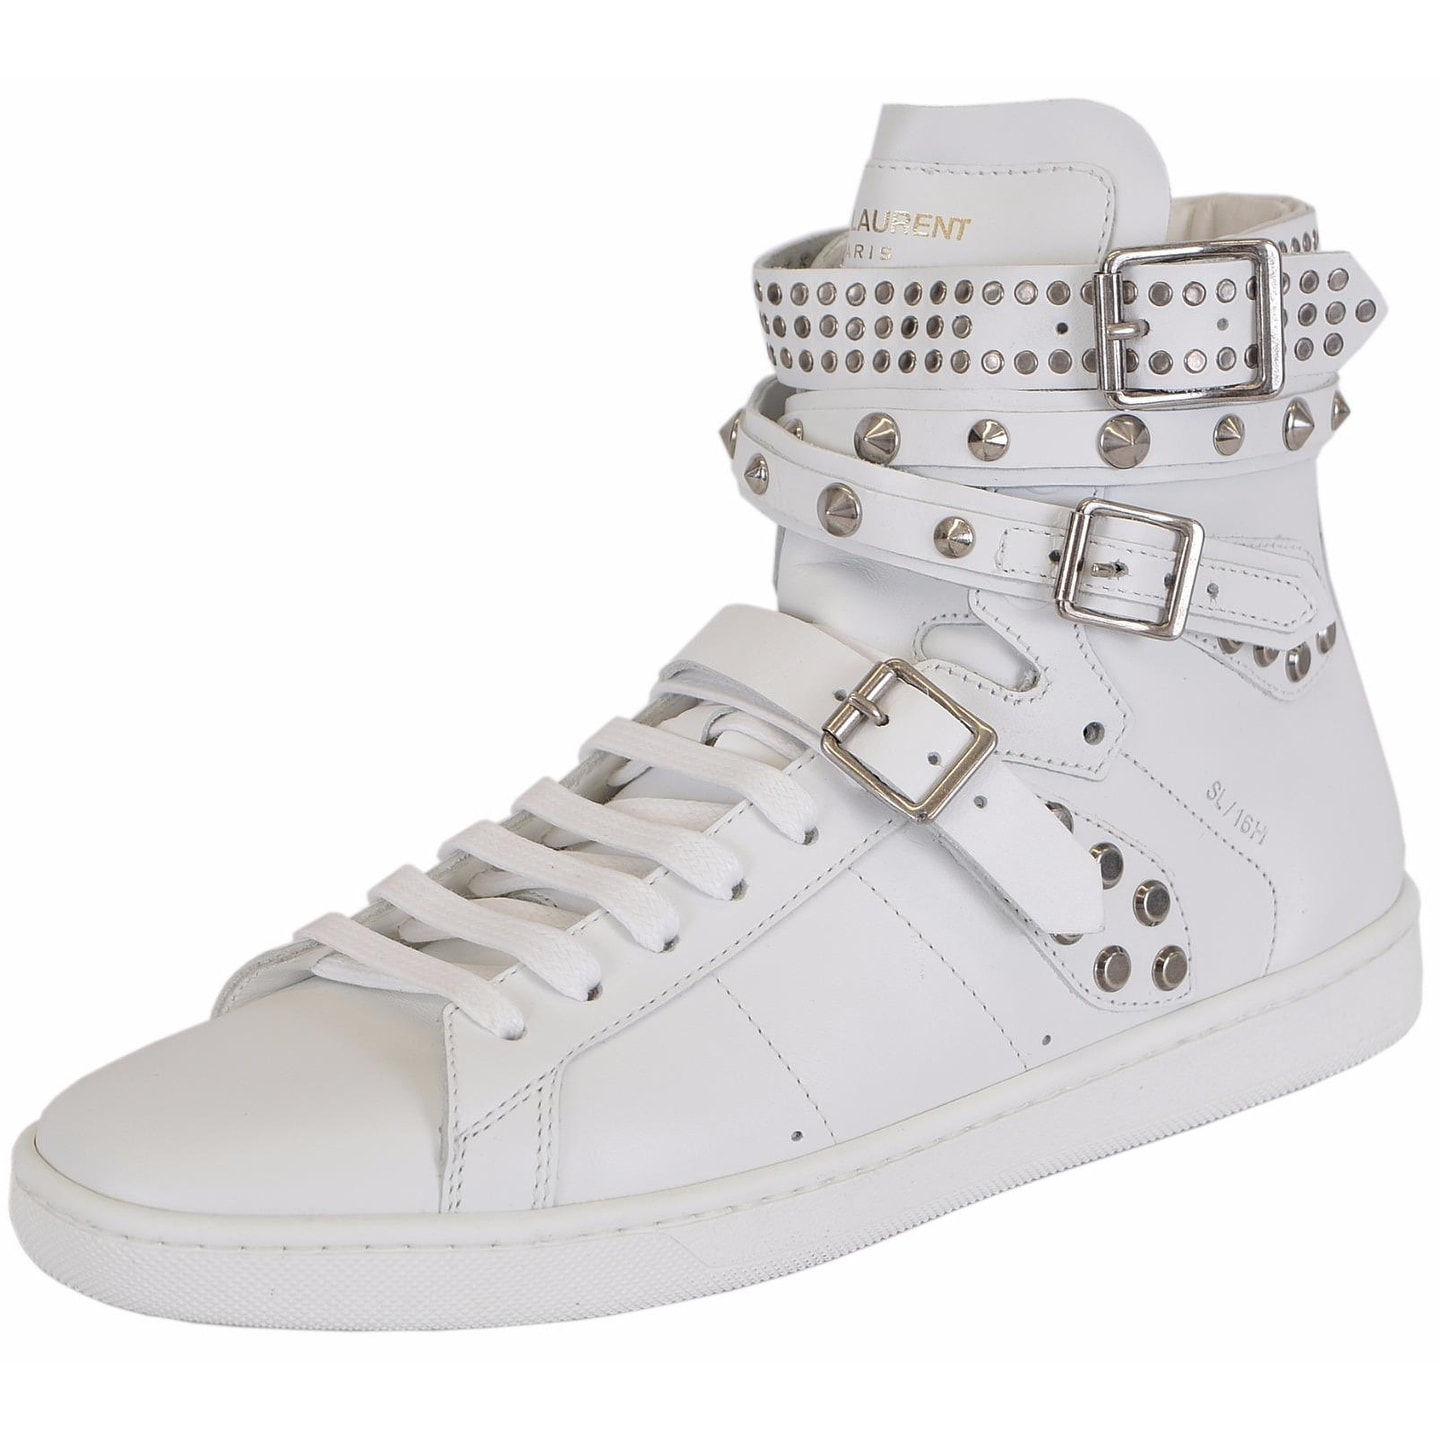 Shop Yves Saint Laurent YSL Women s White Studded Court Classic Hi Top Sneakers  Shoes - Free Shipping Today - Overstock - 14535024 2fa71aa7b